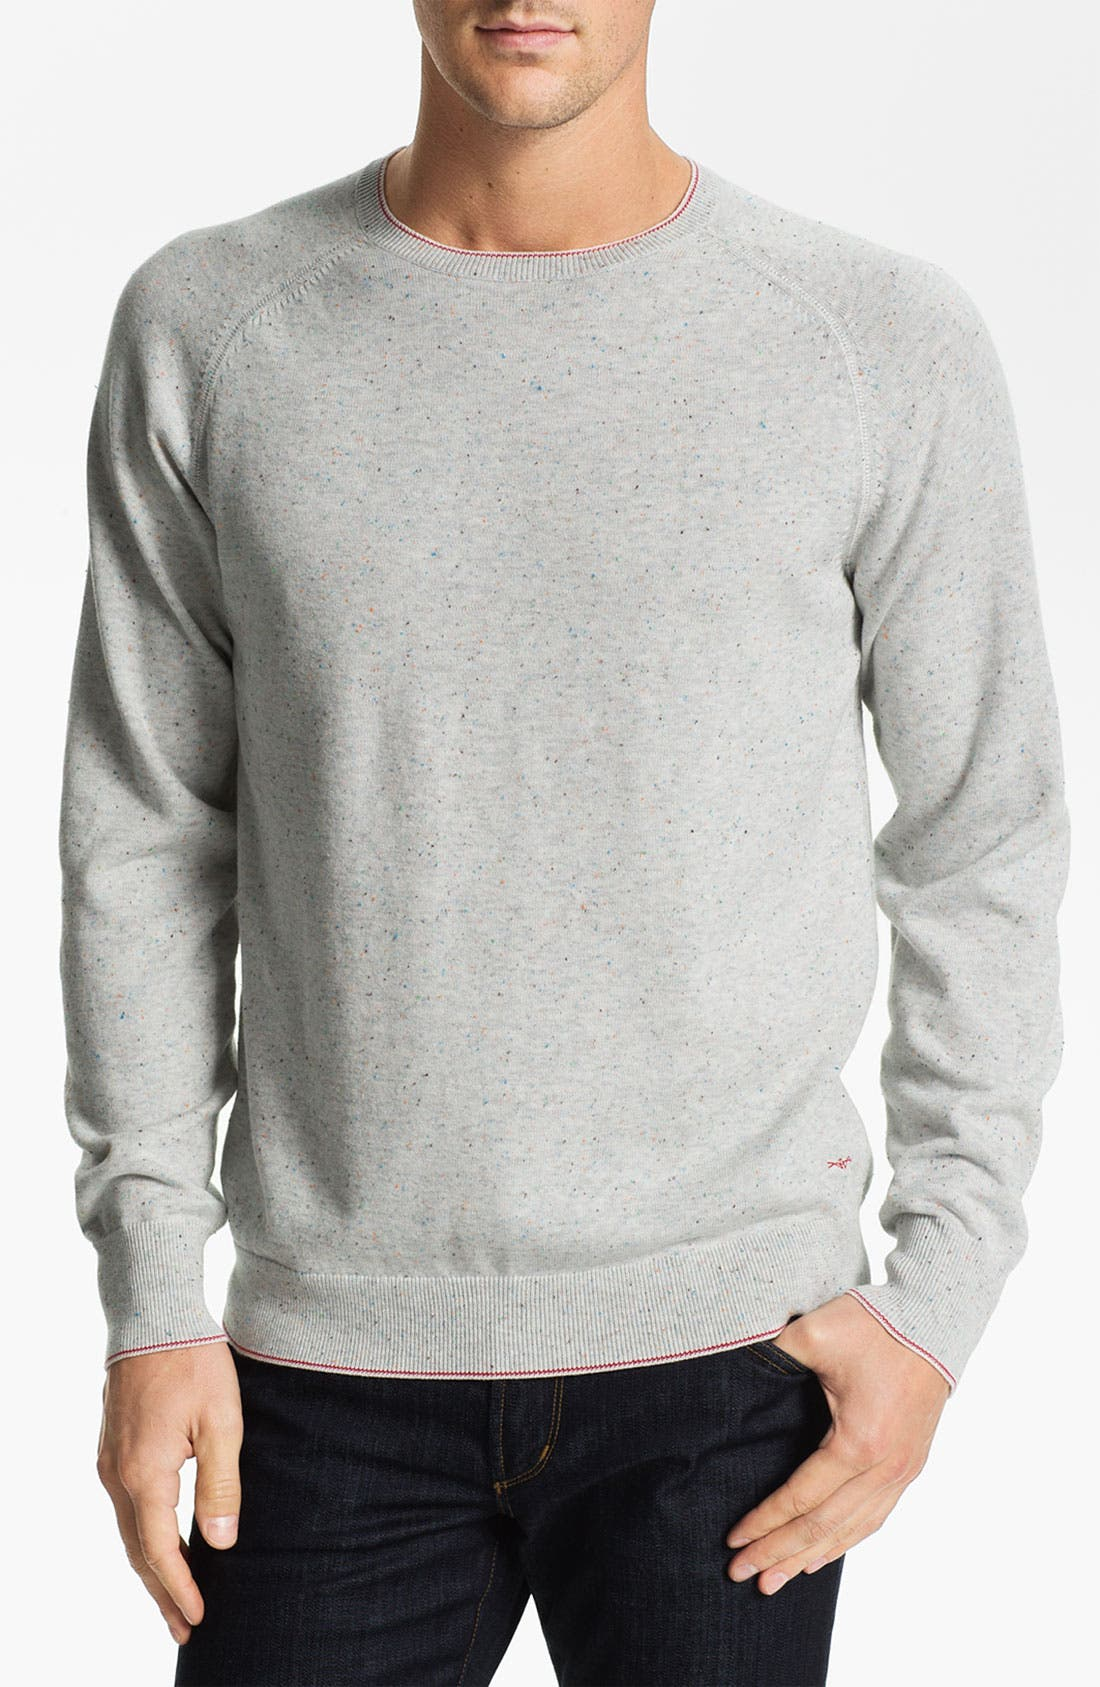 AGAVE 'Abeam' Crewneck Sweater, Main, color, 074